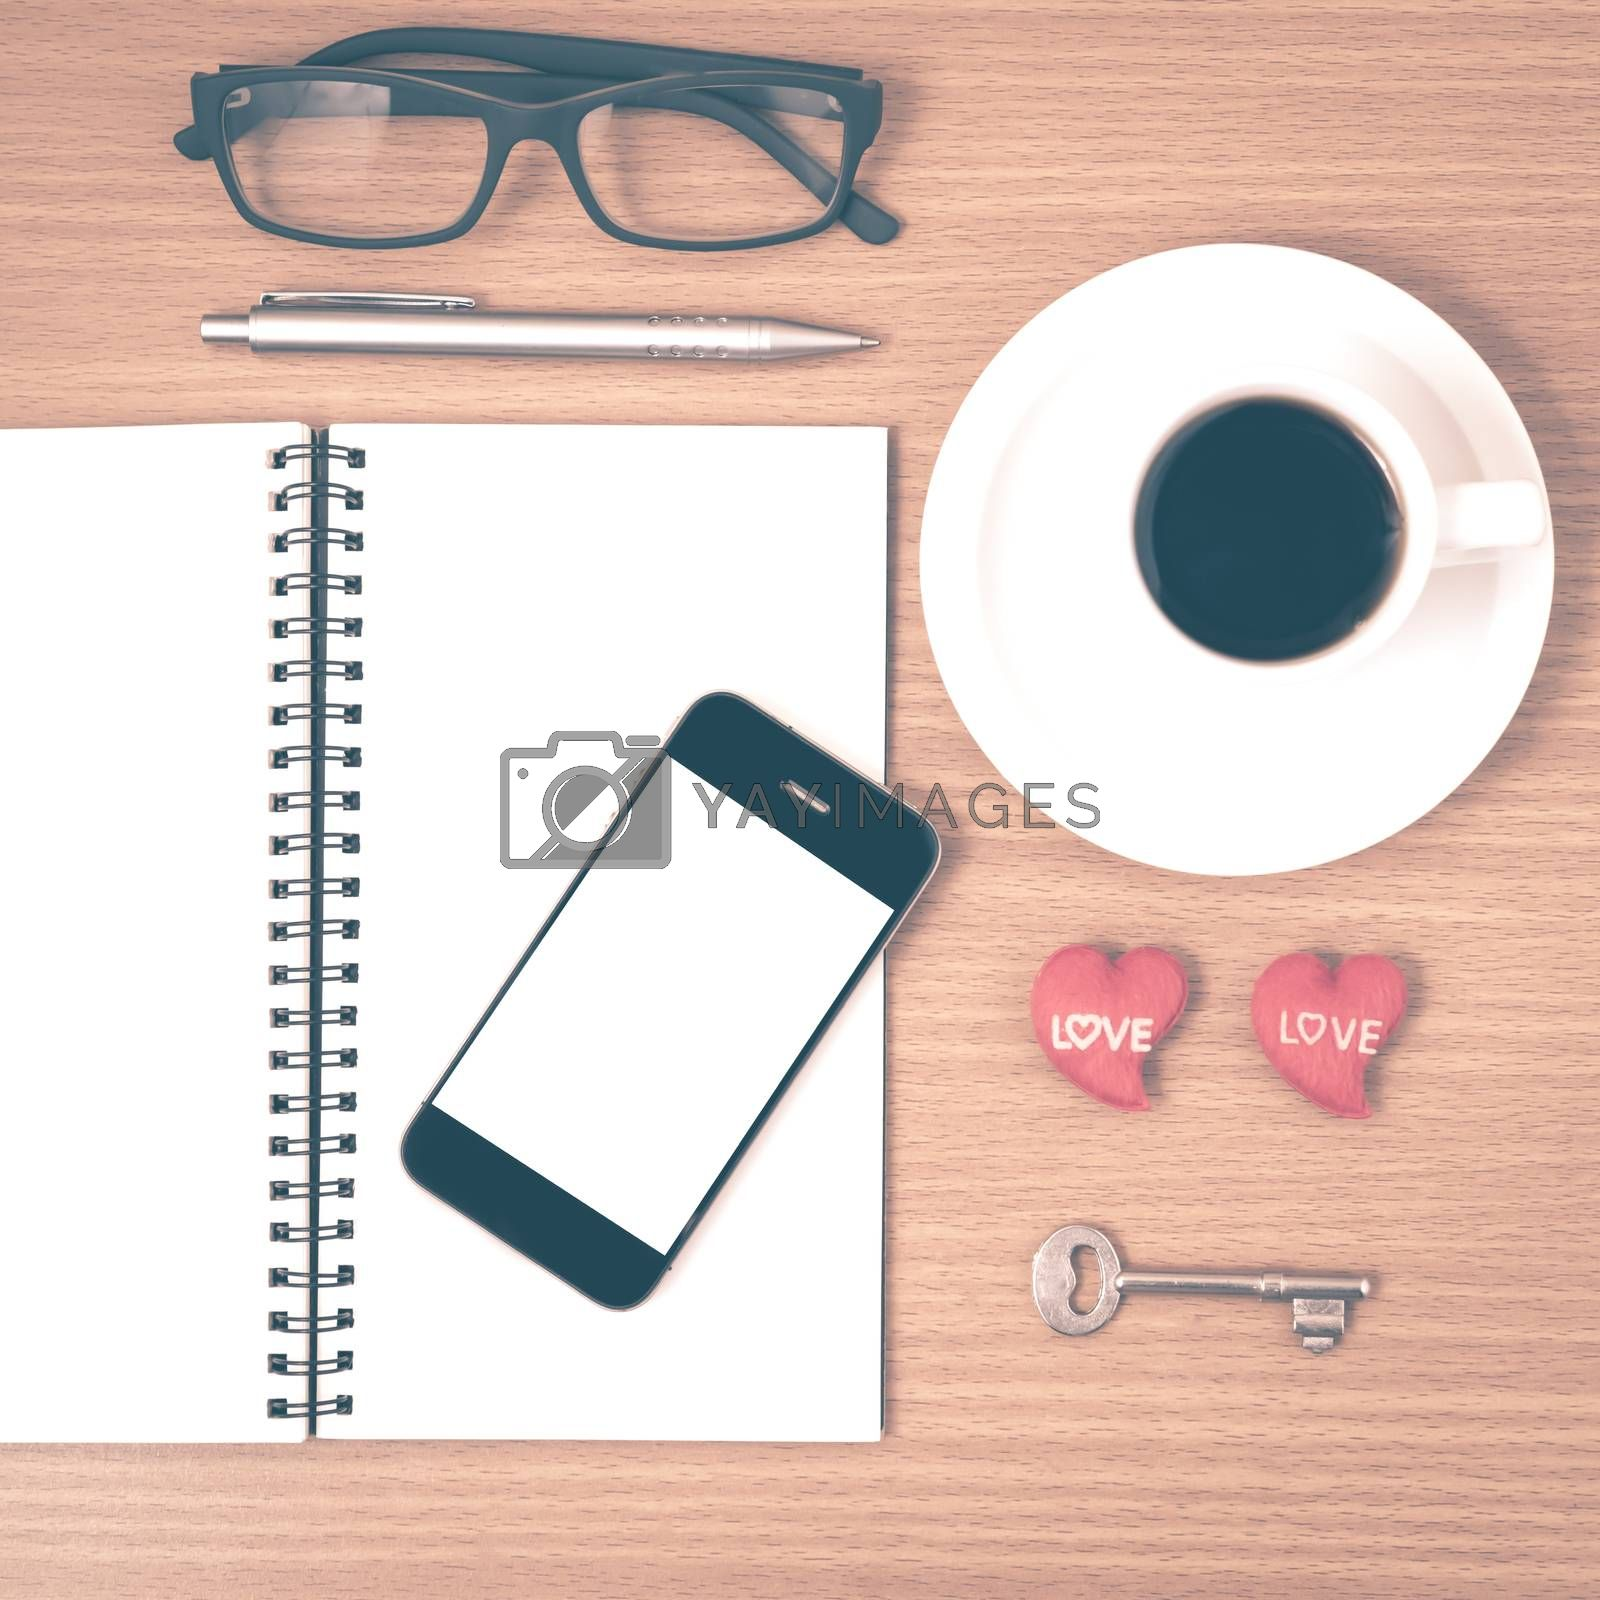 office desk : coffee and phone with key,eyeglasses,notepad,heart on wood background vintage style